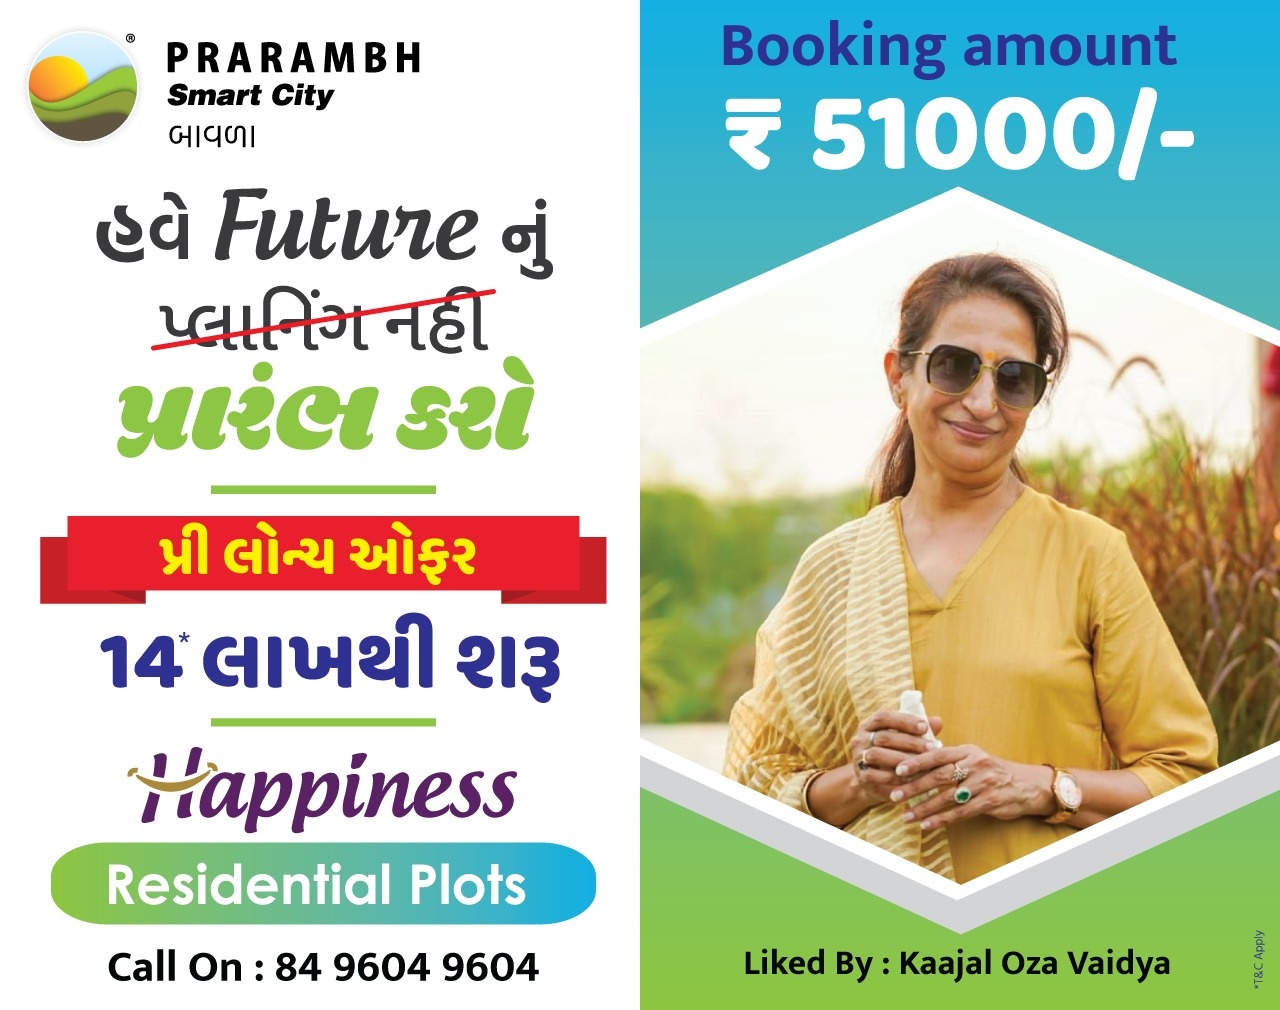 Happiness, Residential Plots by PRARAMBH